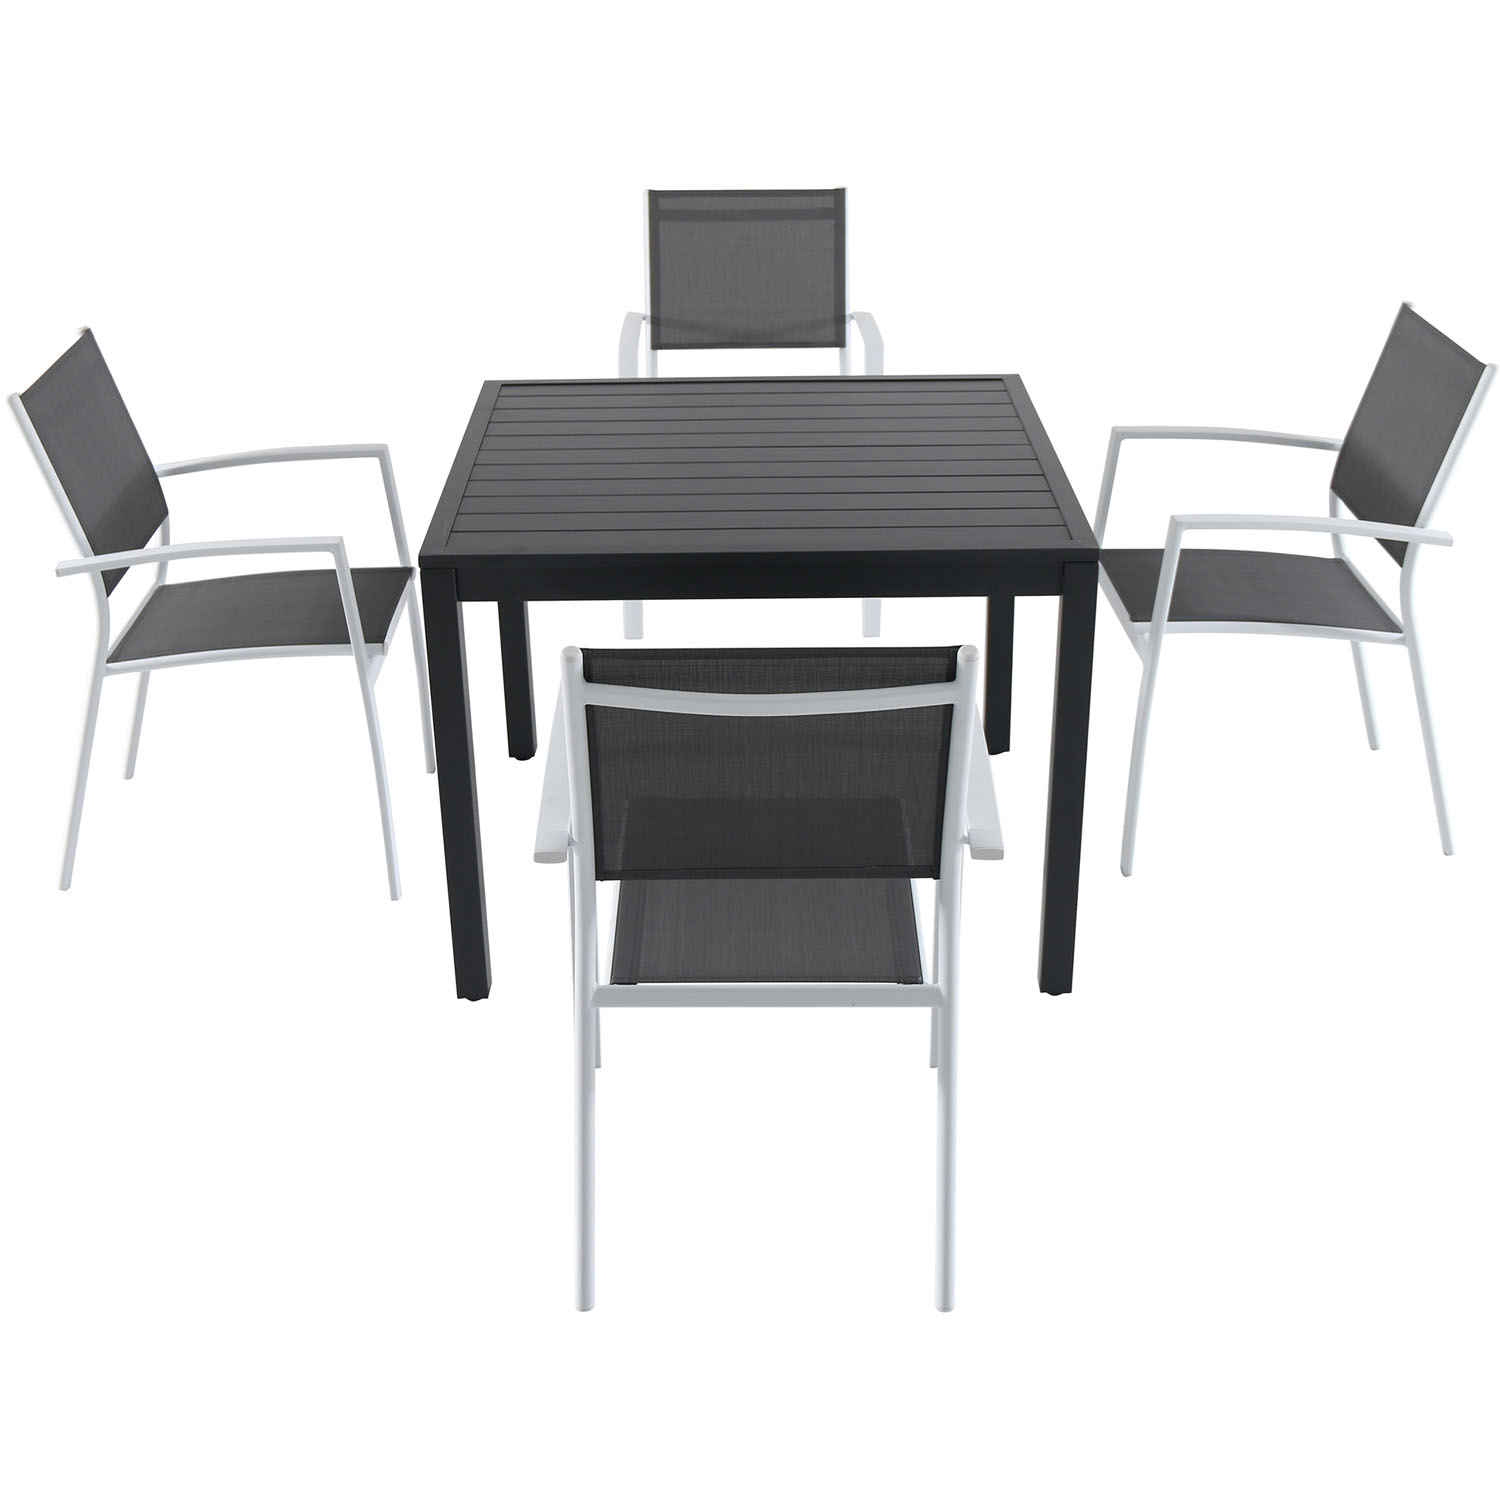 Attrayant Cambridge Nova 5 Piece Outdoor Dining Set With 4 Sling Arm Chairs And A 38